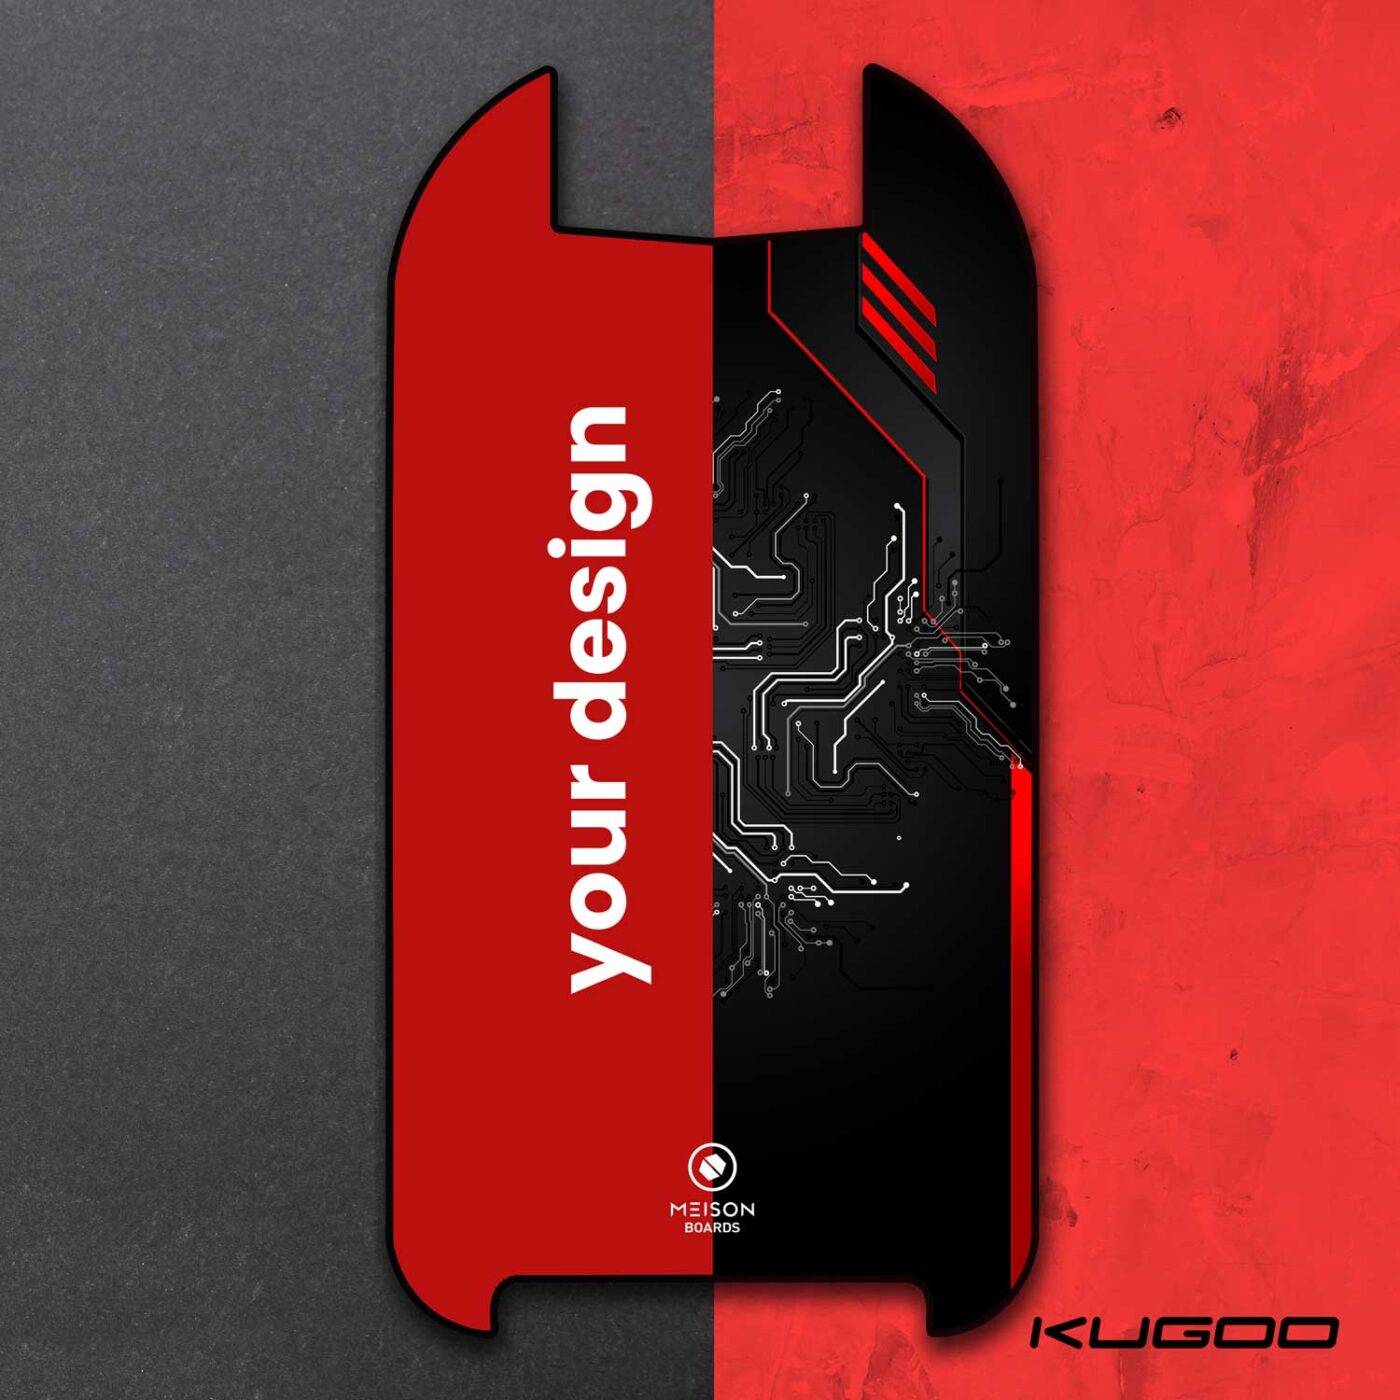 Meison Boards Kugoo G Booster